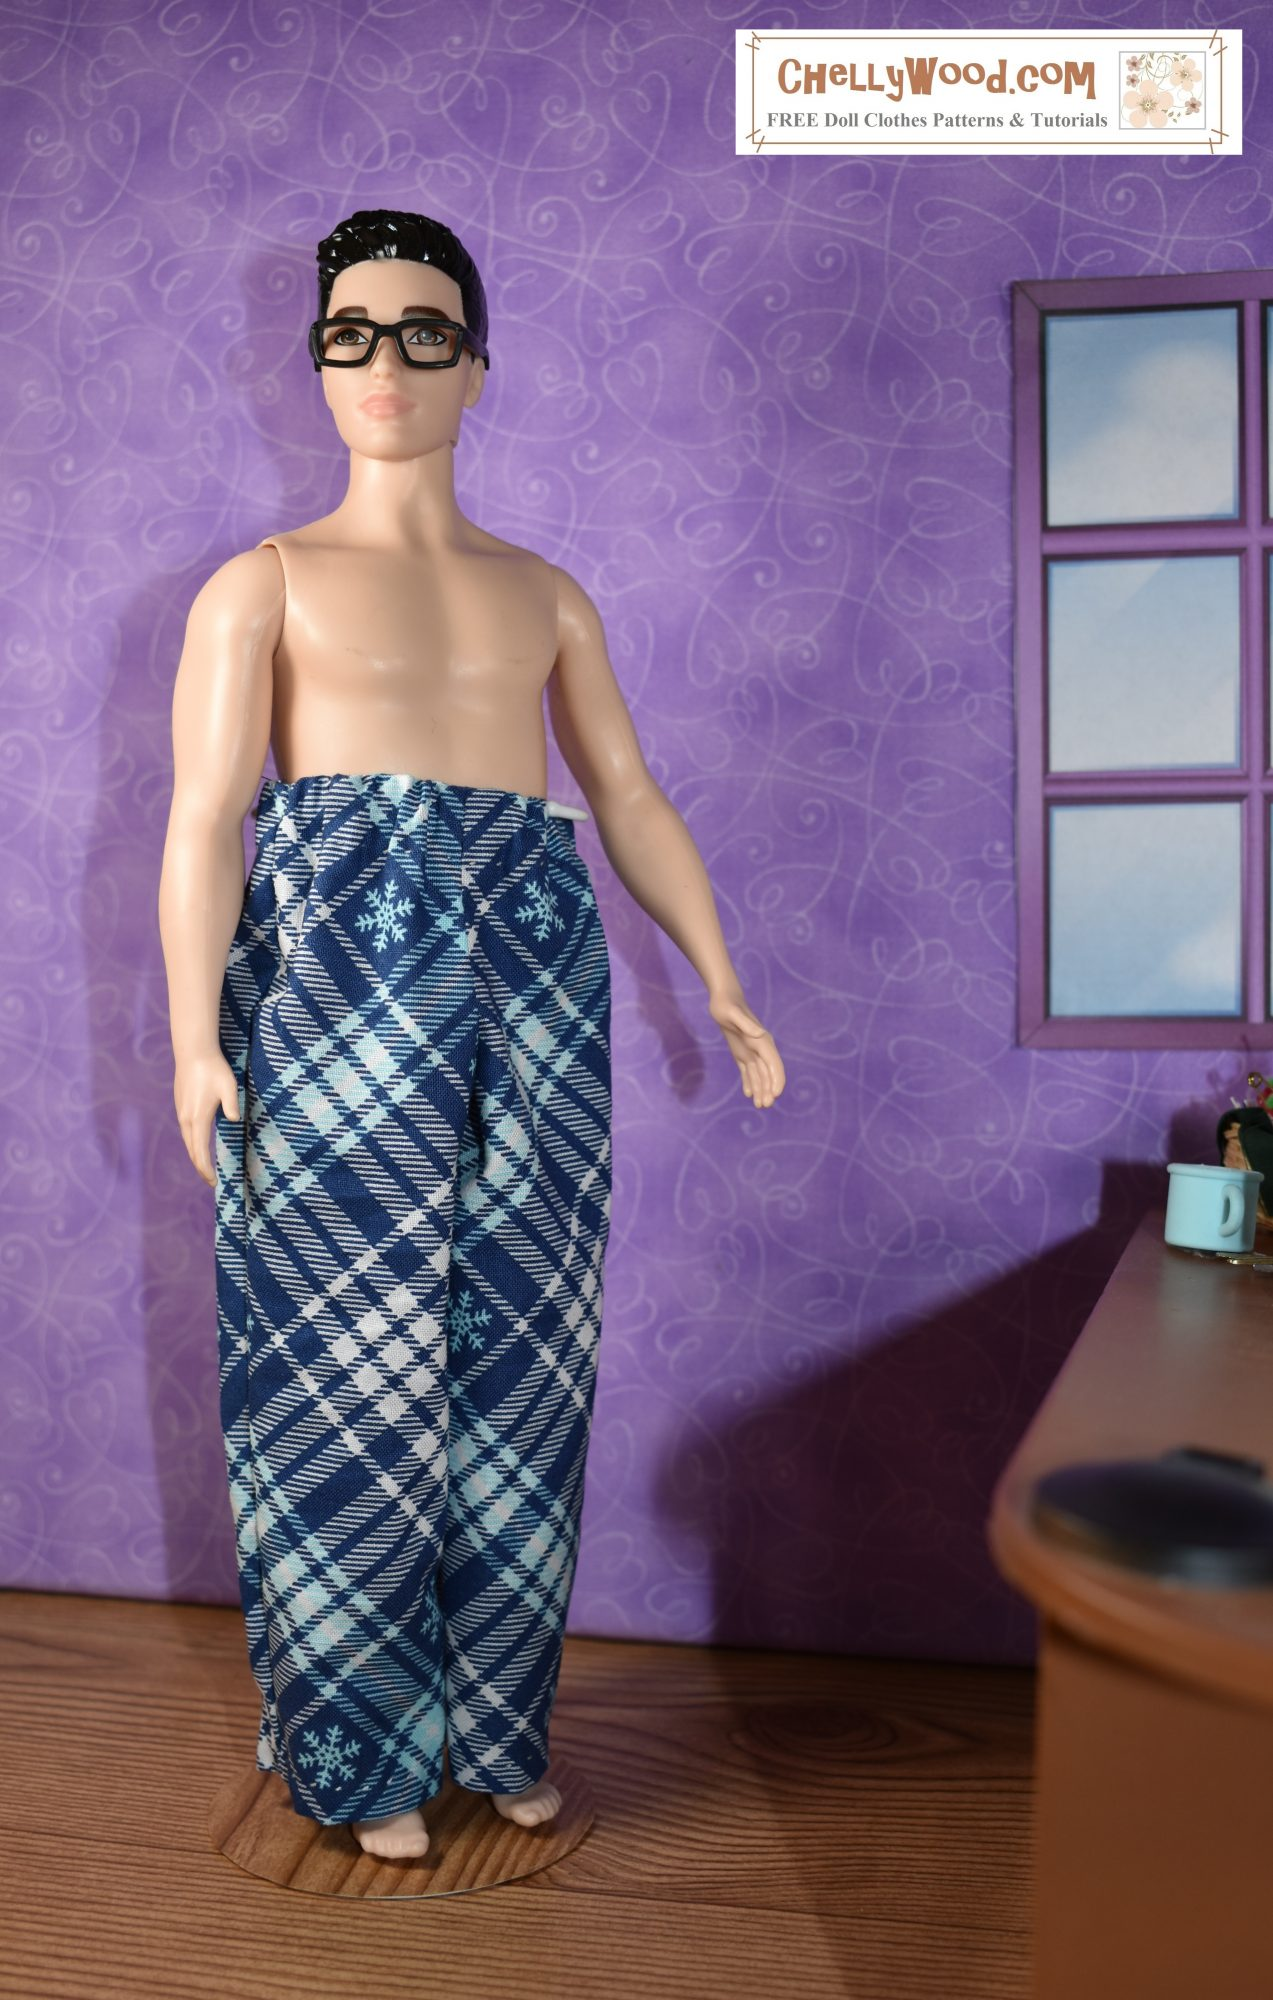 """The image shows Mattels """"Broad Ken"""" doll modeling a pair of plaid pajama pants made with a free printable sewing pattern found at ChellyWood.com"""